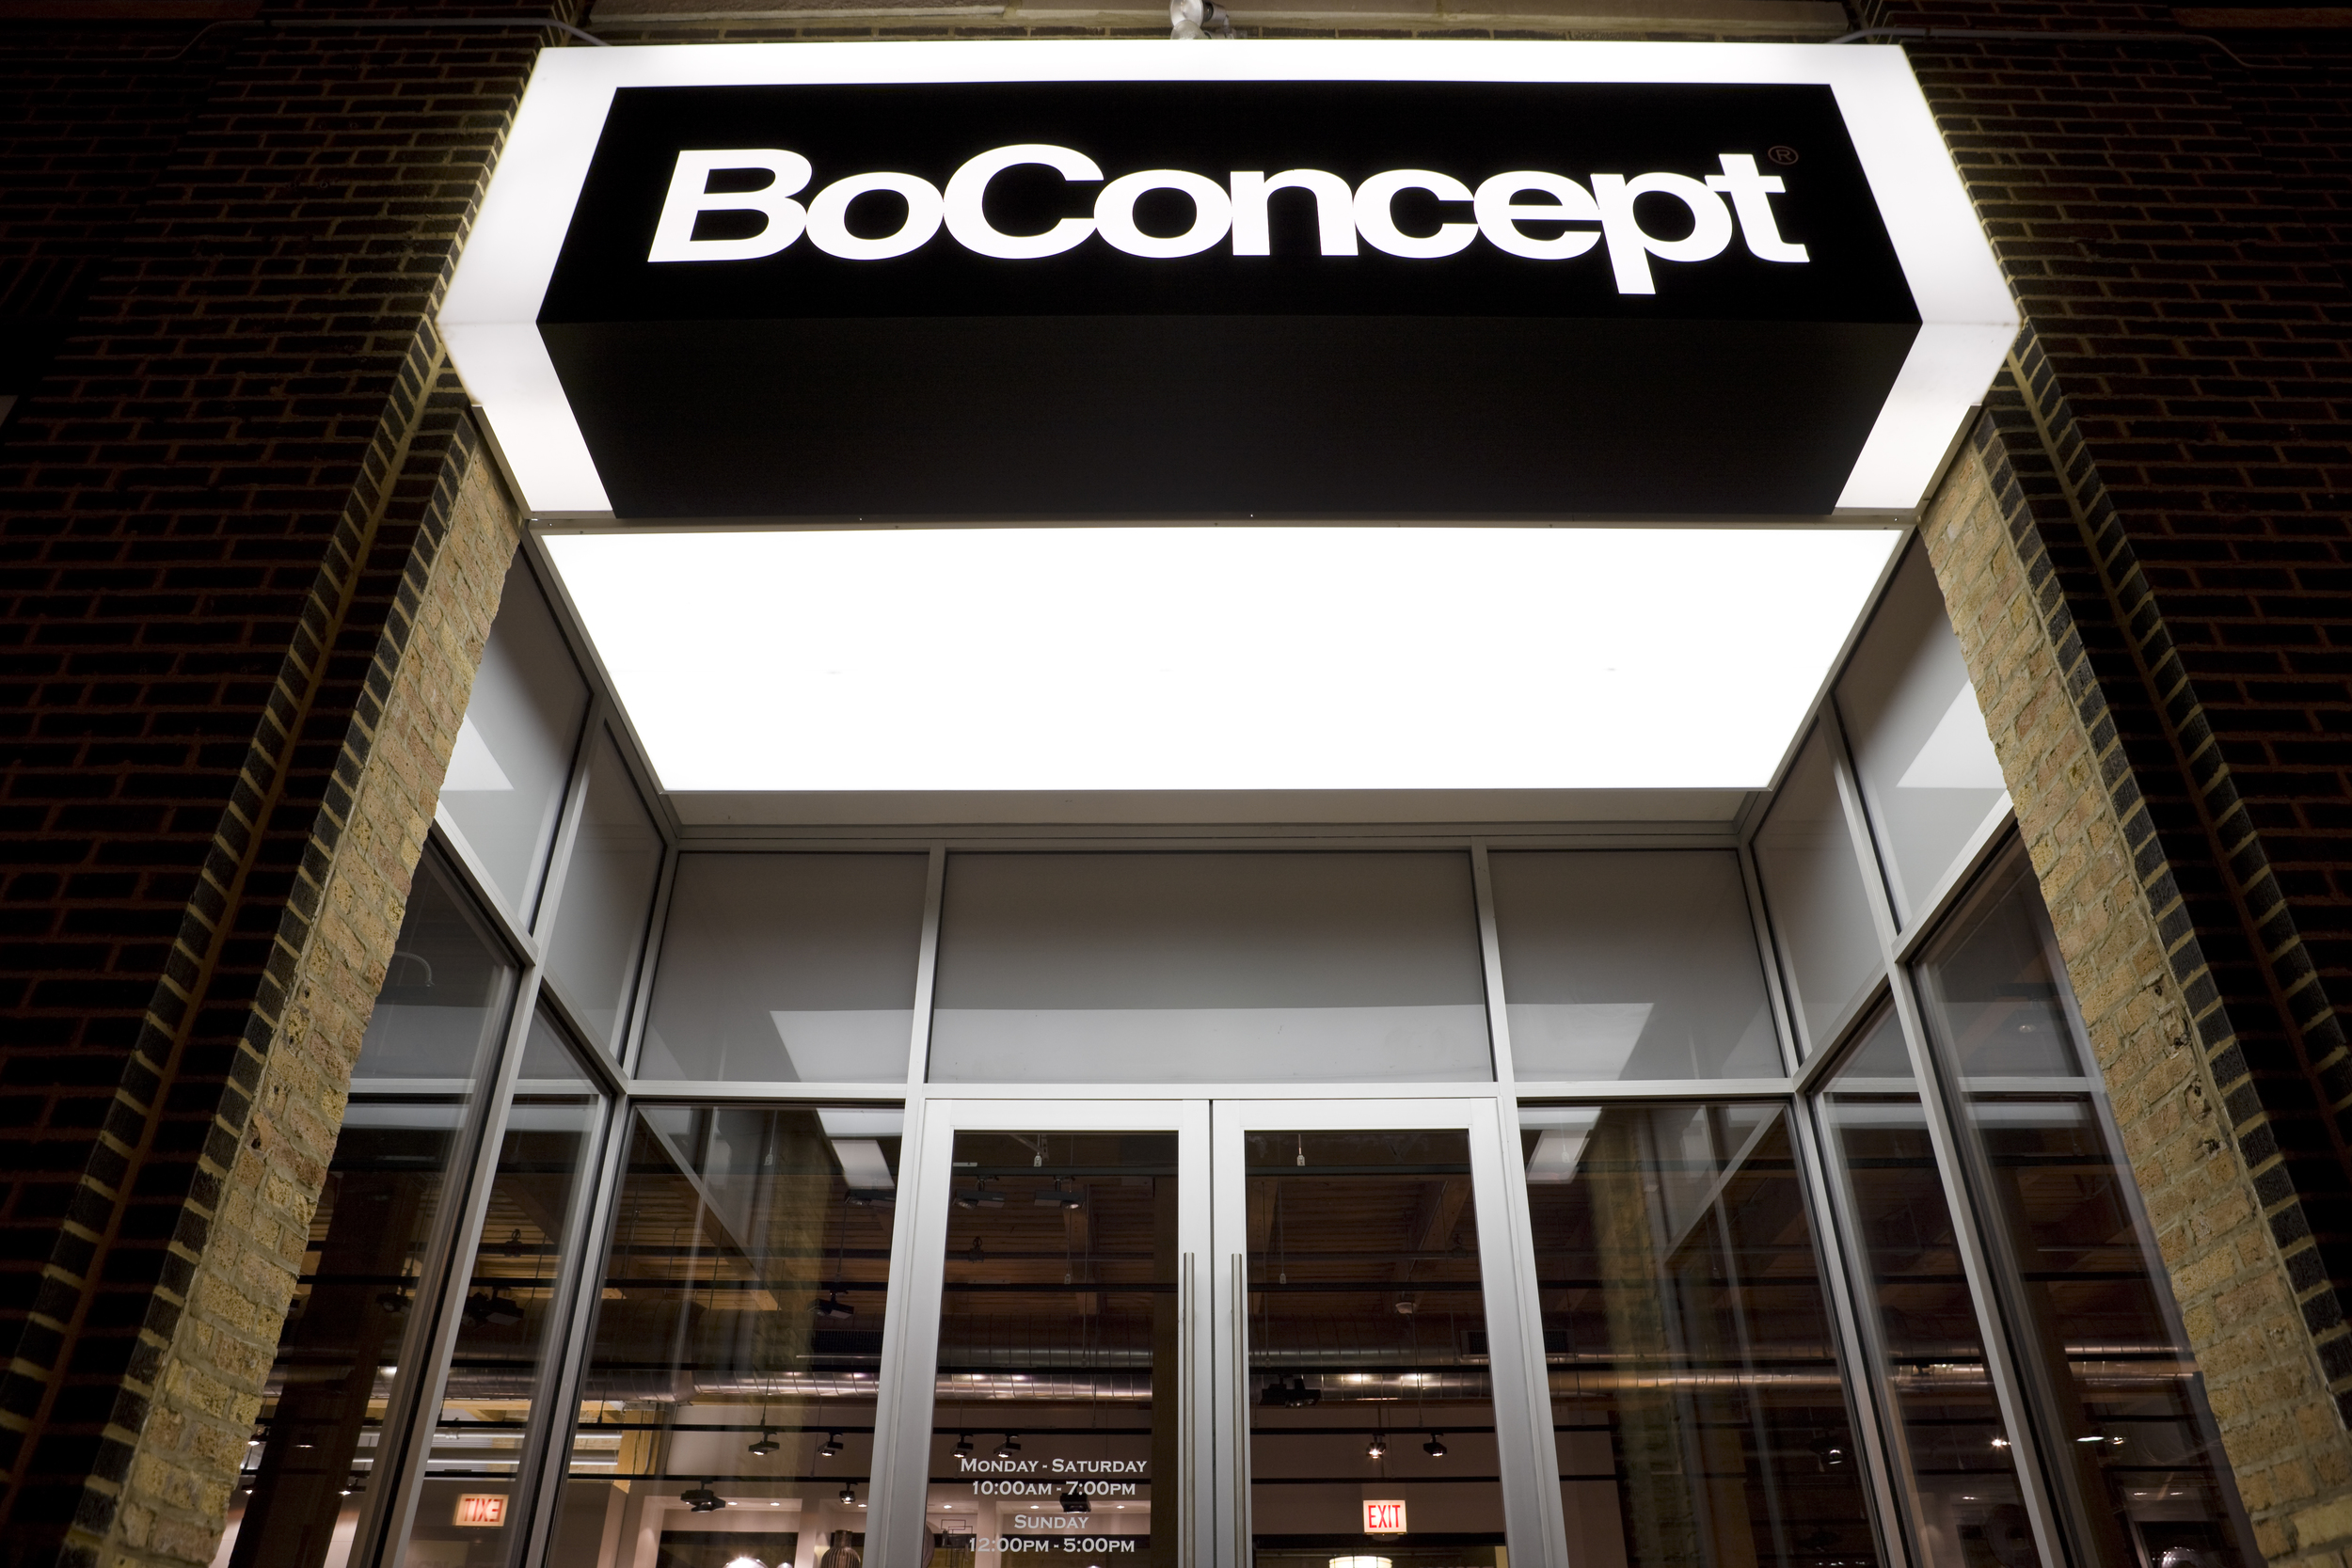 BOCONCEPT, CHICAGO FLAGSHIP RETAIL STORE